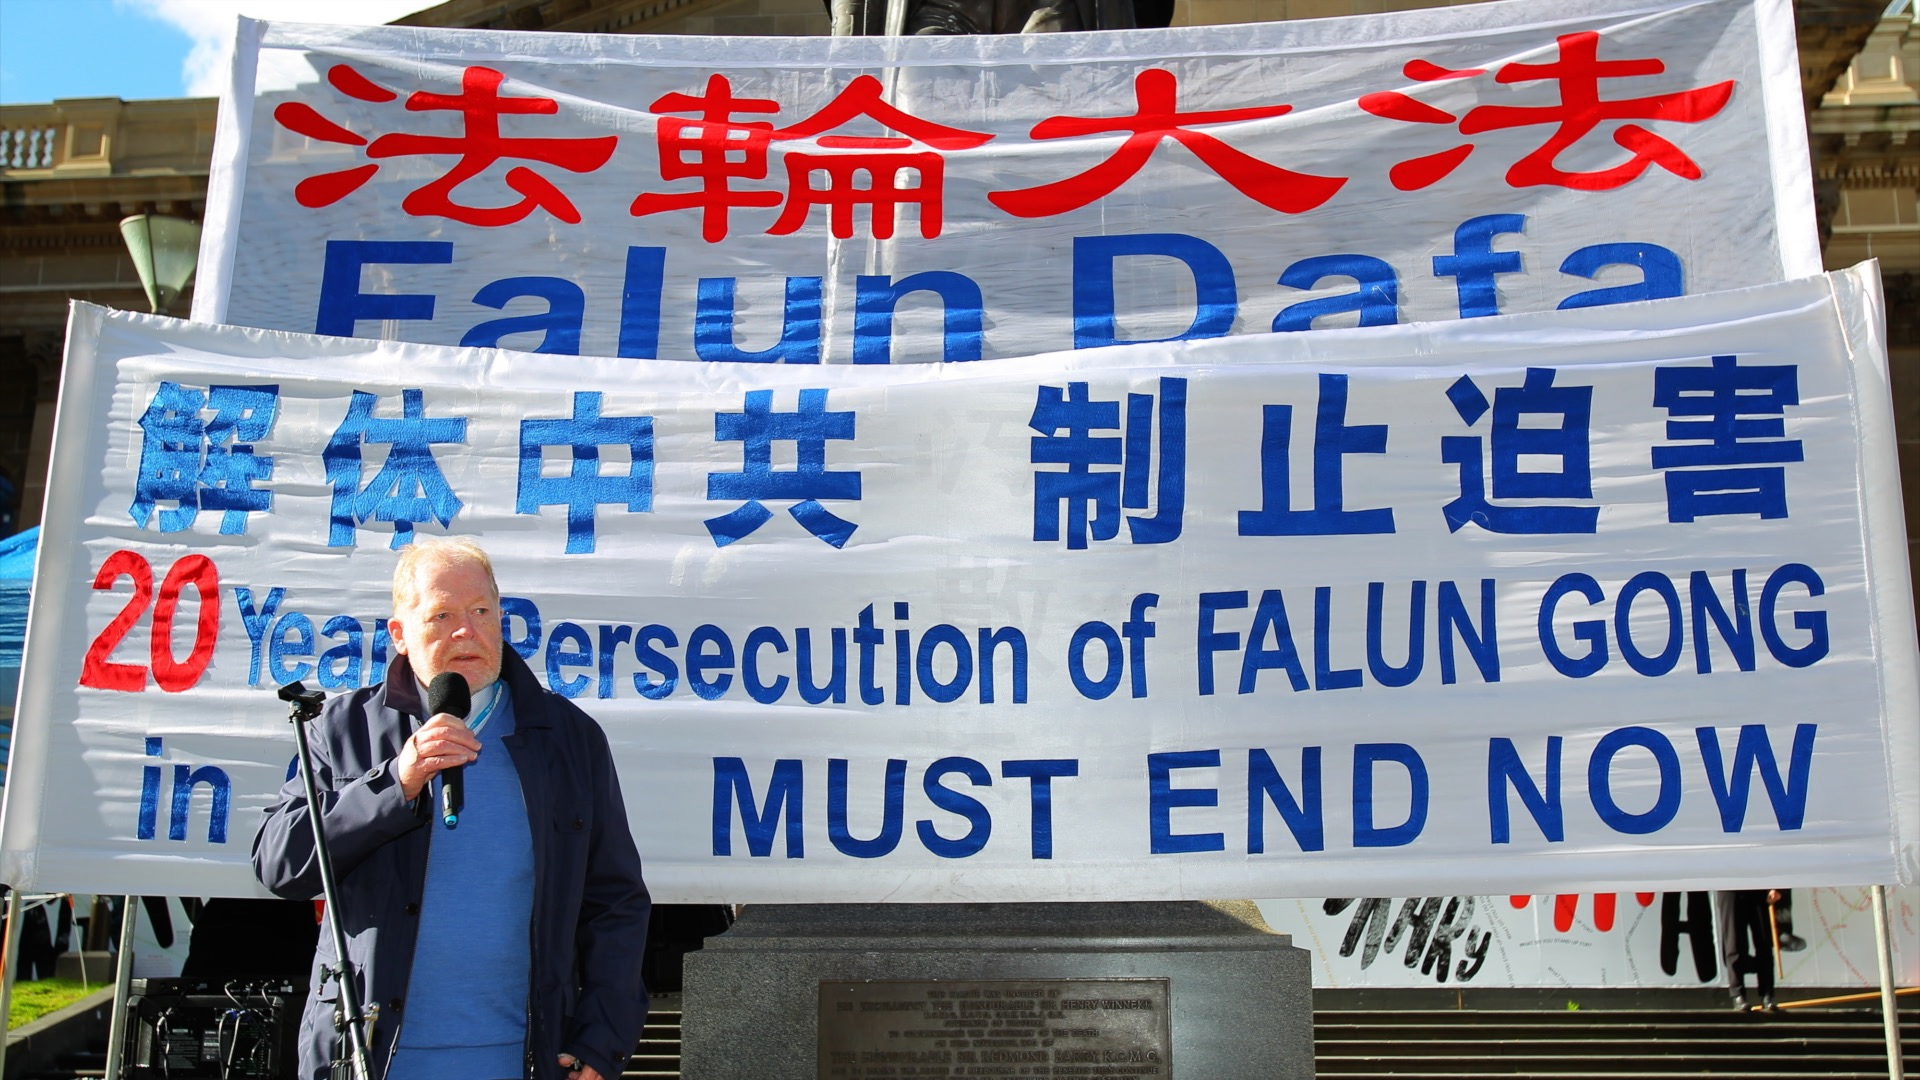 Melbourne Community Leaders Stand With Falun Gong